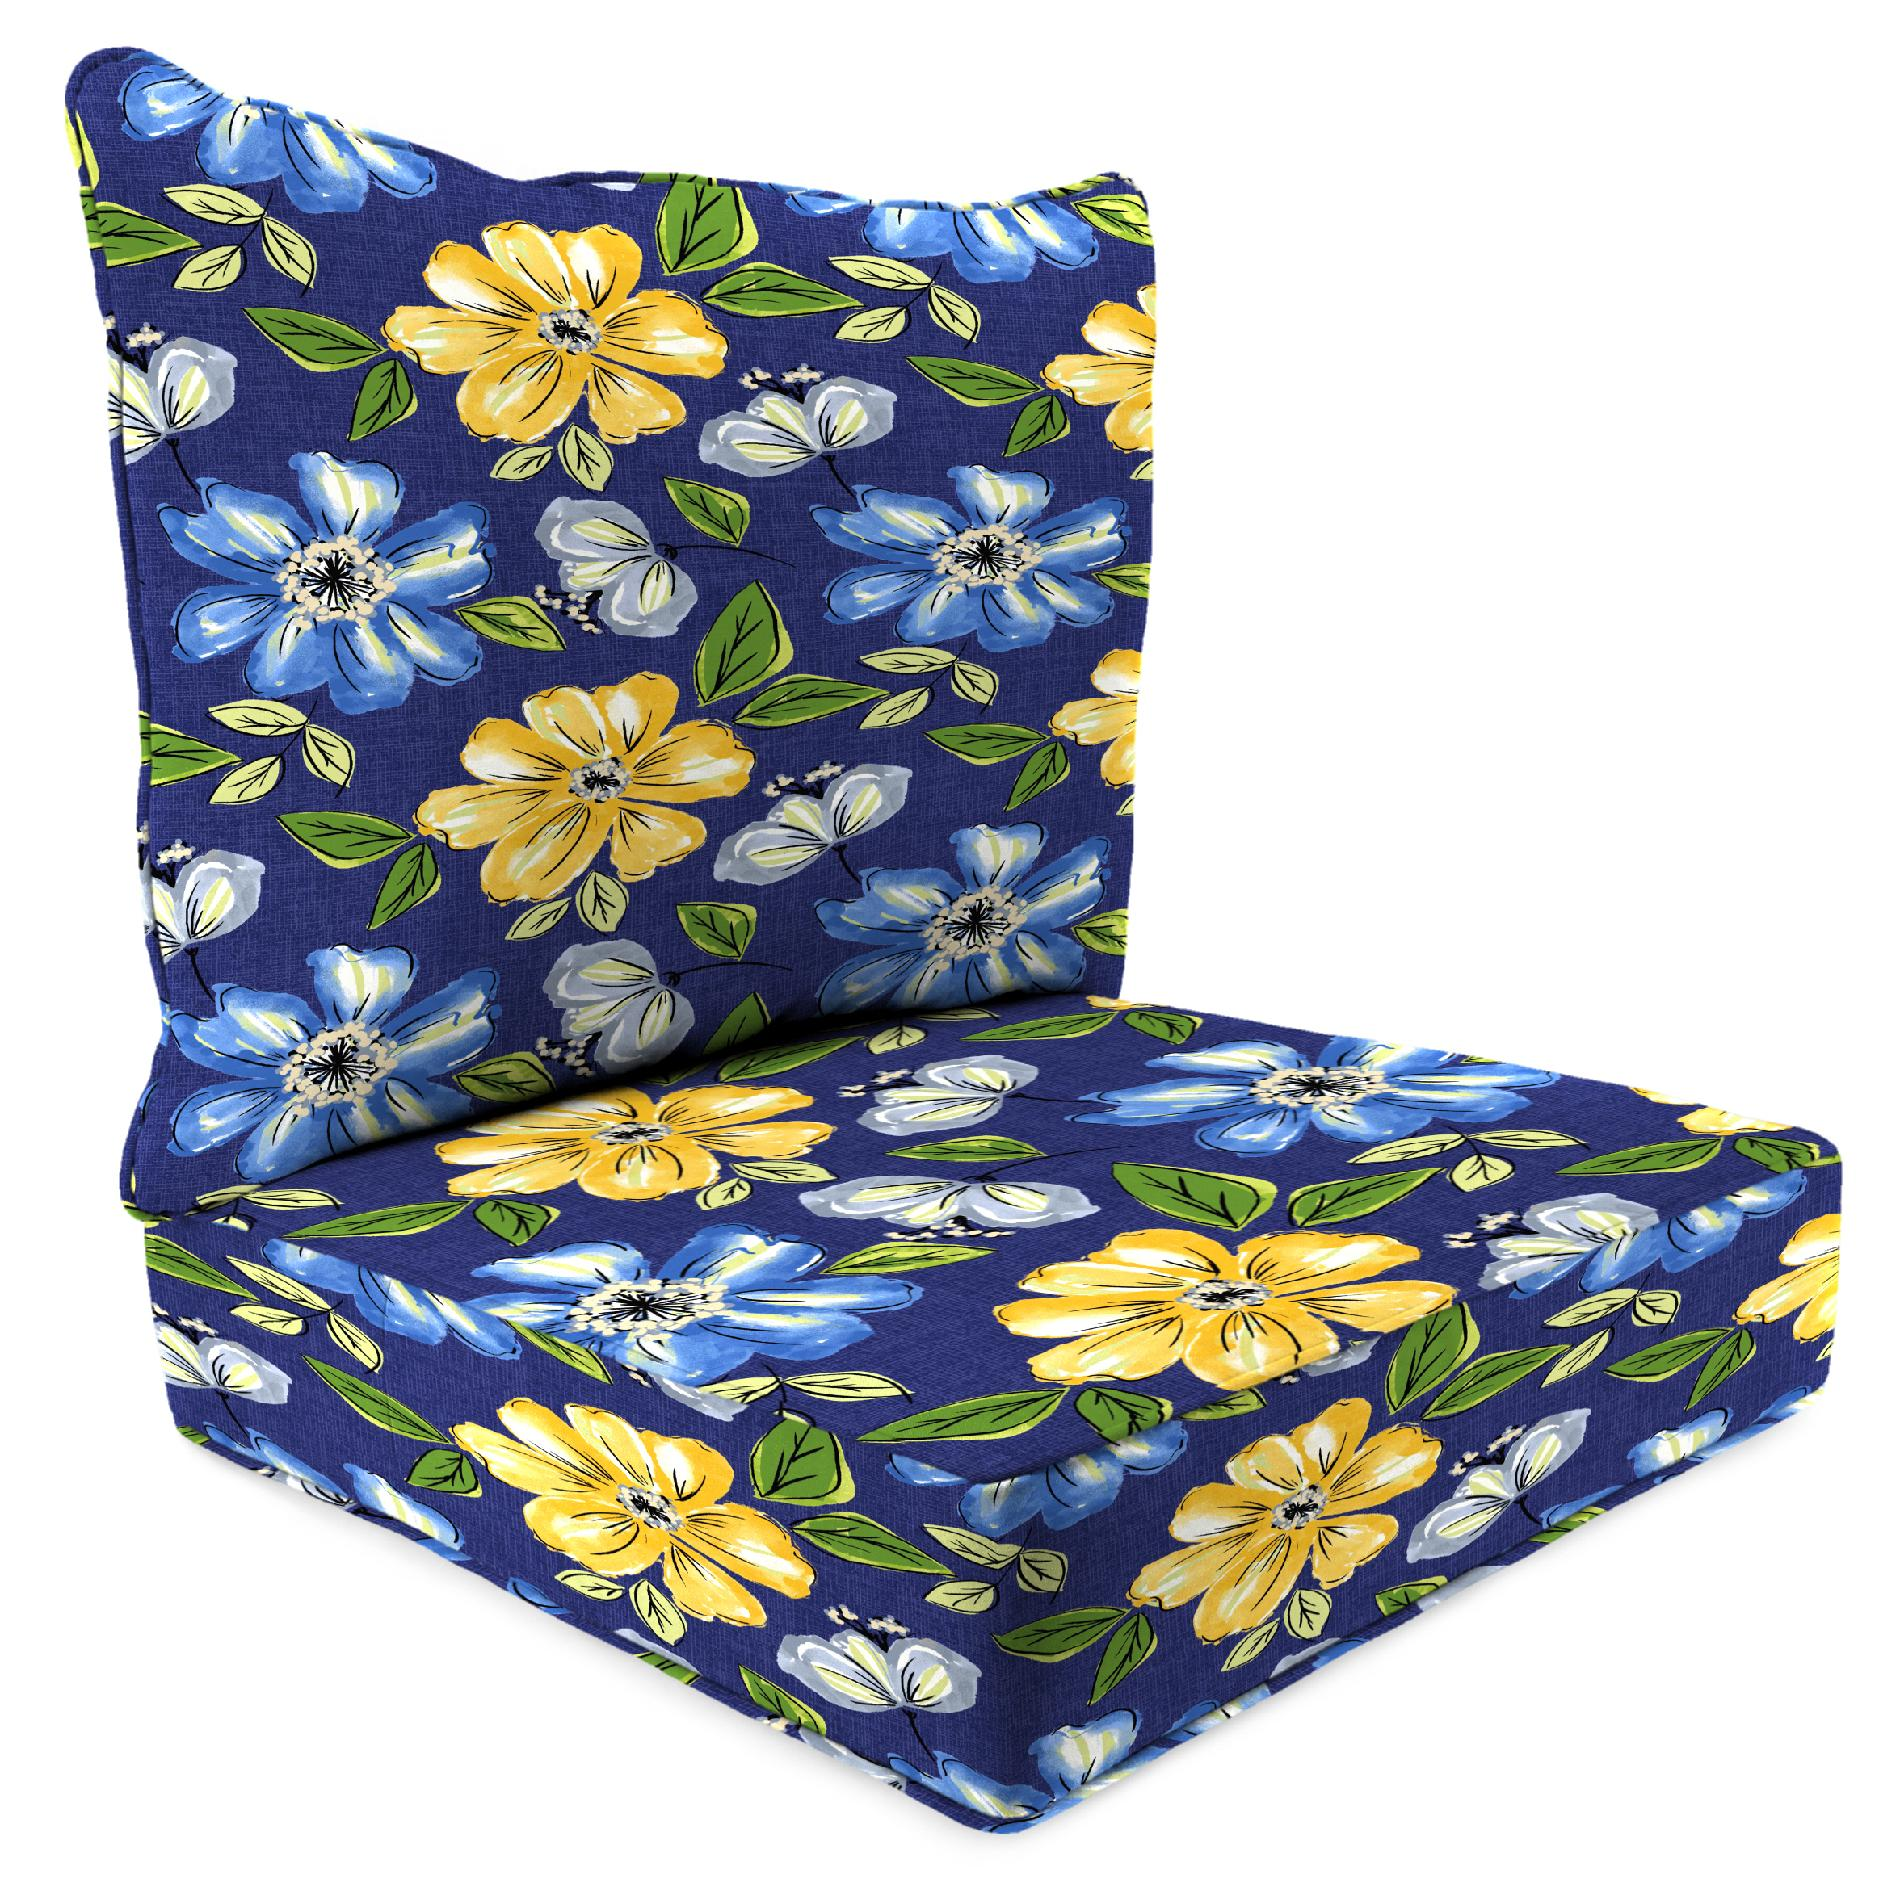 boxed chair cushions lyndsey linens and covers jordan manufacturing co inc 2 piece deep seat